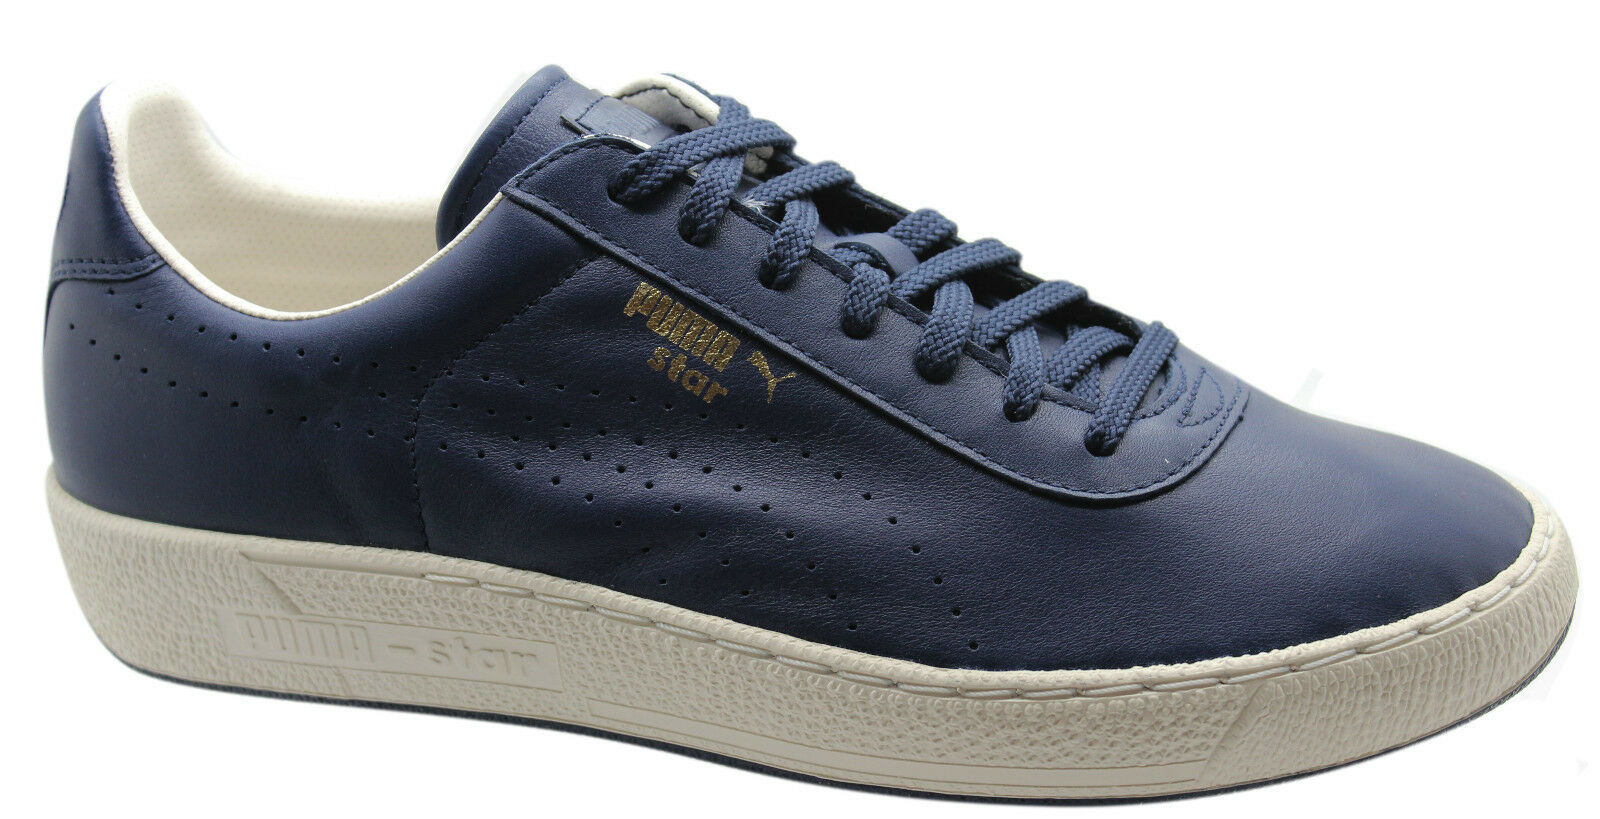 Puma Star Mens Trainers Low shoes Navy bluee Leather Lace Up 357763 03 U70